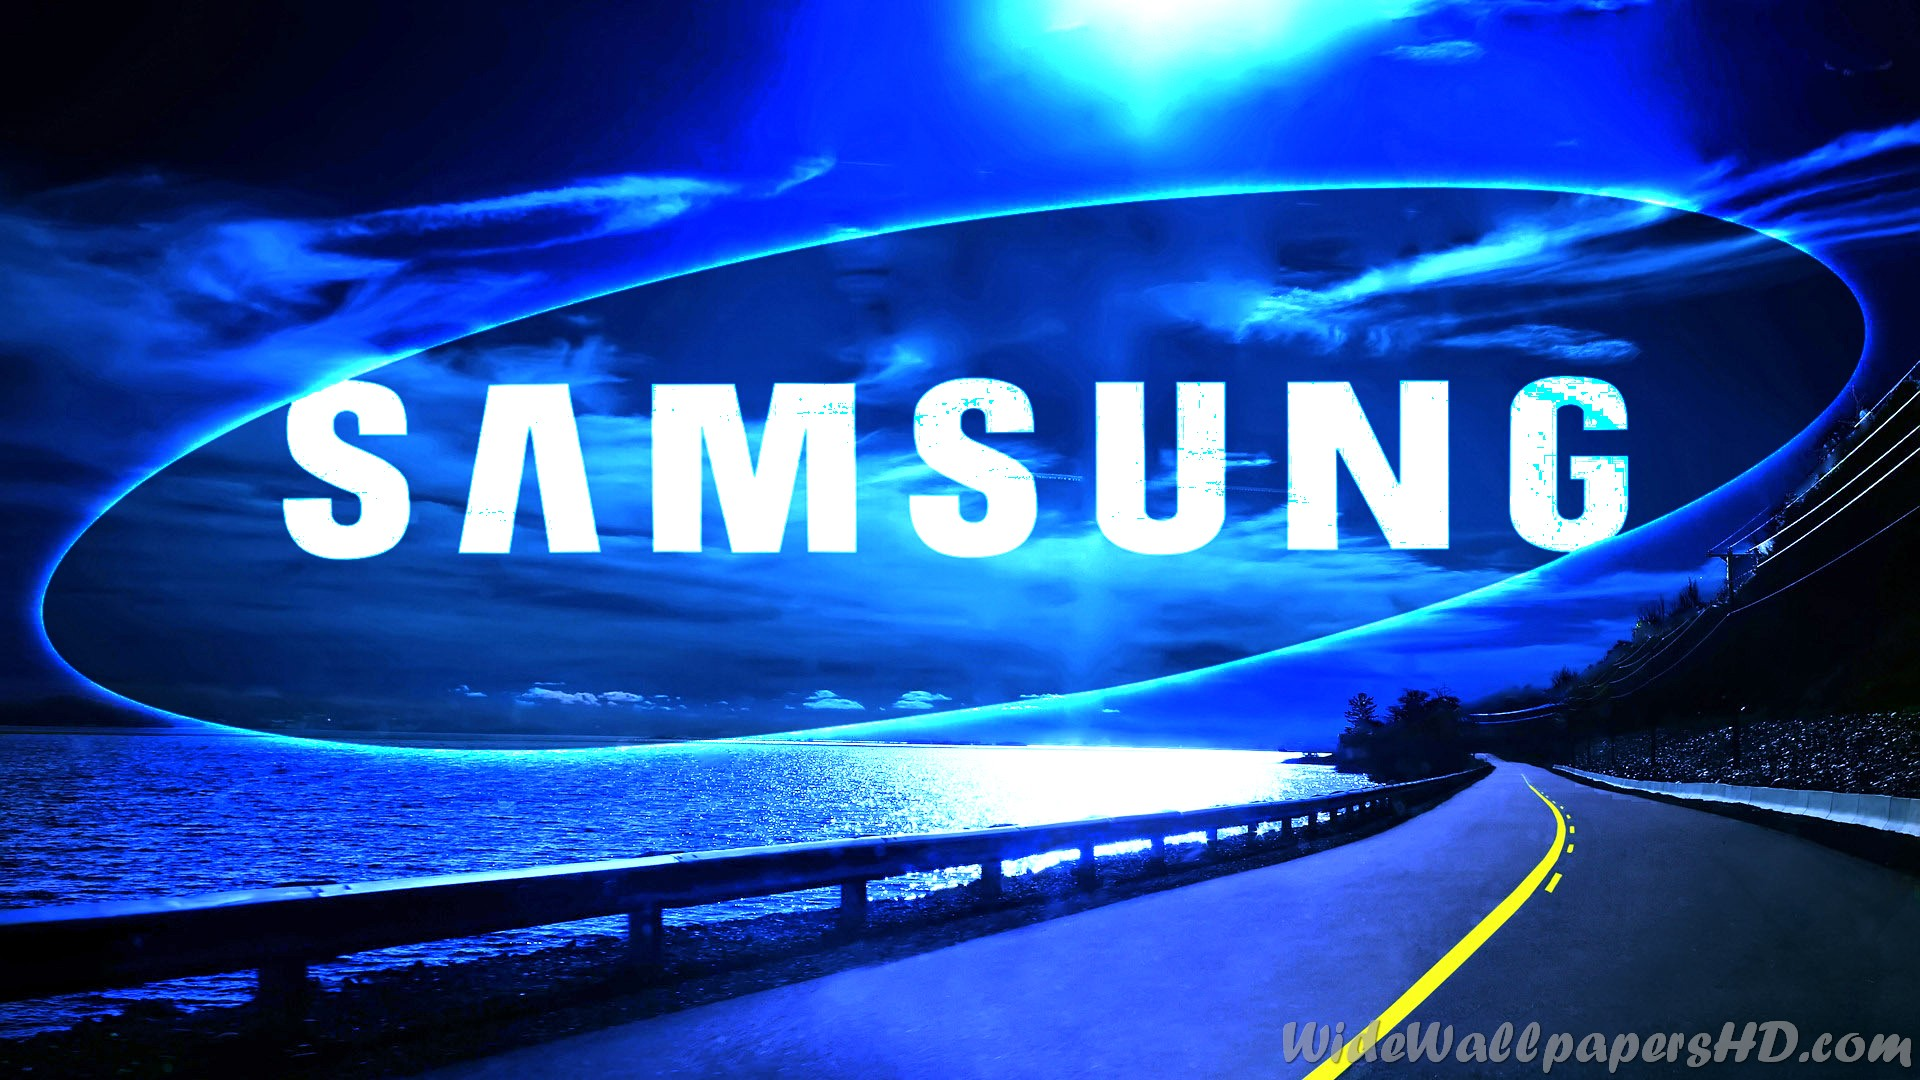 Samsung TV Wallpaper